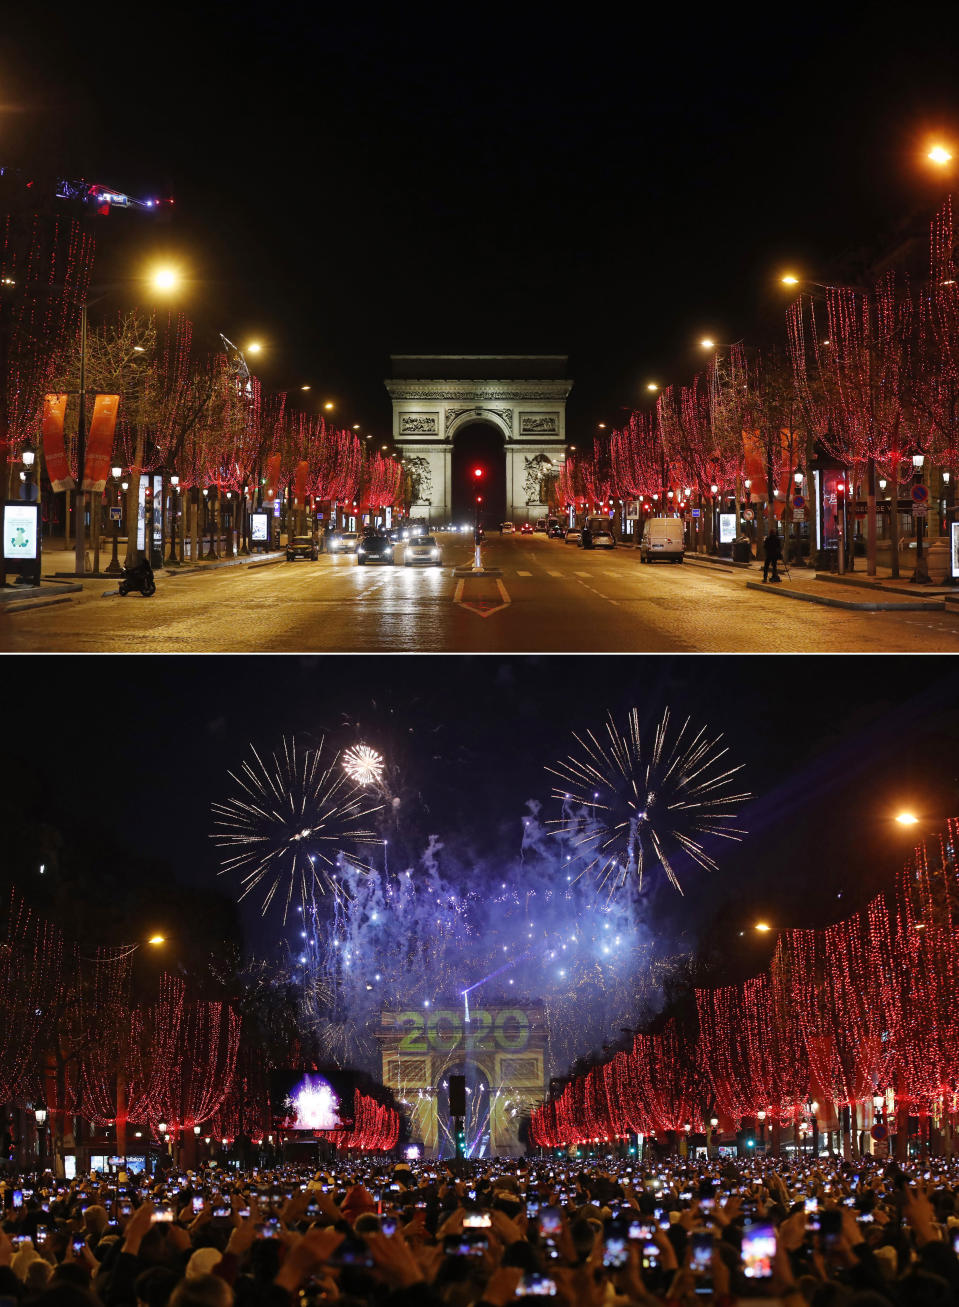 A combo image showing a general view of the Champs Elysees avenue in Paris very early on New Year's Day Friday, Jan. 1, 2021, and the bottom one the same location packed with revelers early on Tuesday, Jan. 1, 2020. As the world says goodbye to 2020, there will be countdowns and live performances, but no massed jubilant crowds in traditional gathering spots like the Champs Elysees in Paris and New York City's Times Square this New Year's Eve. The virus that ruined 2020 has led to cancelations of most fireworks displays and public events in favor of made-for-TV-only moments in party spots like London and Rio de Janeiro. (AP Photo/Thibault Camus, Christophe Ena)